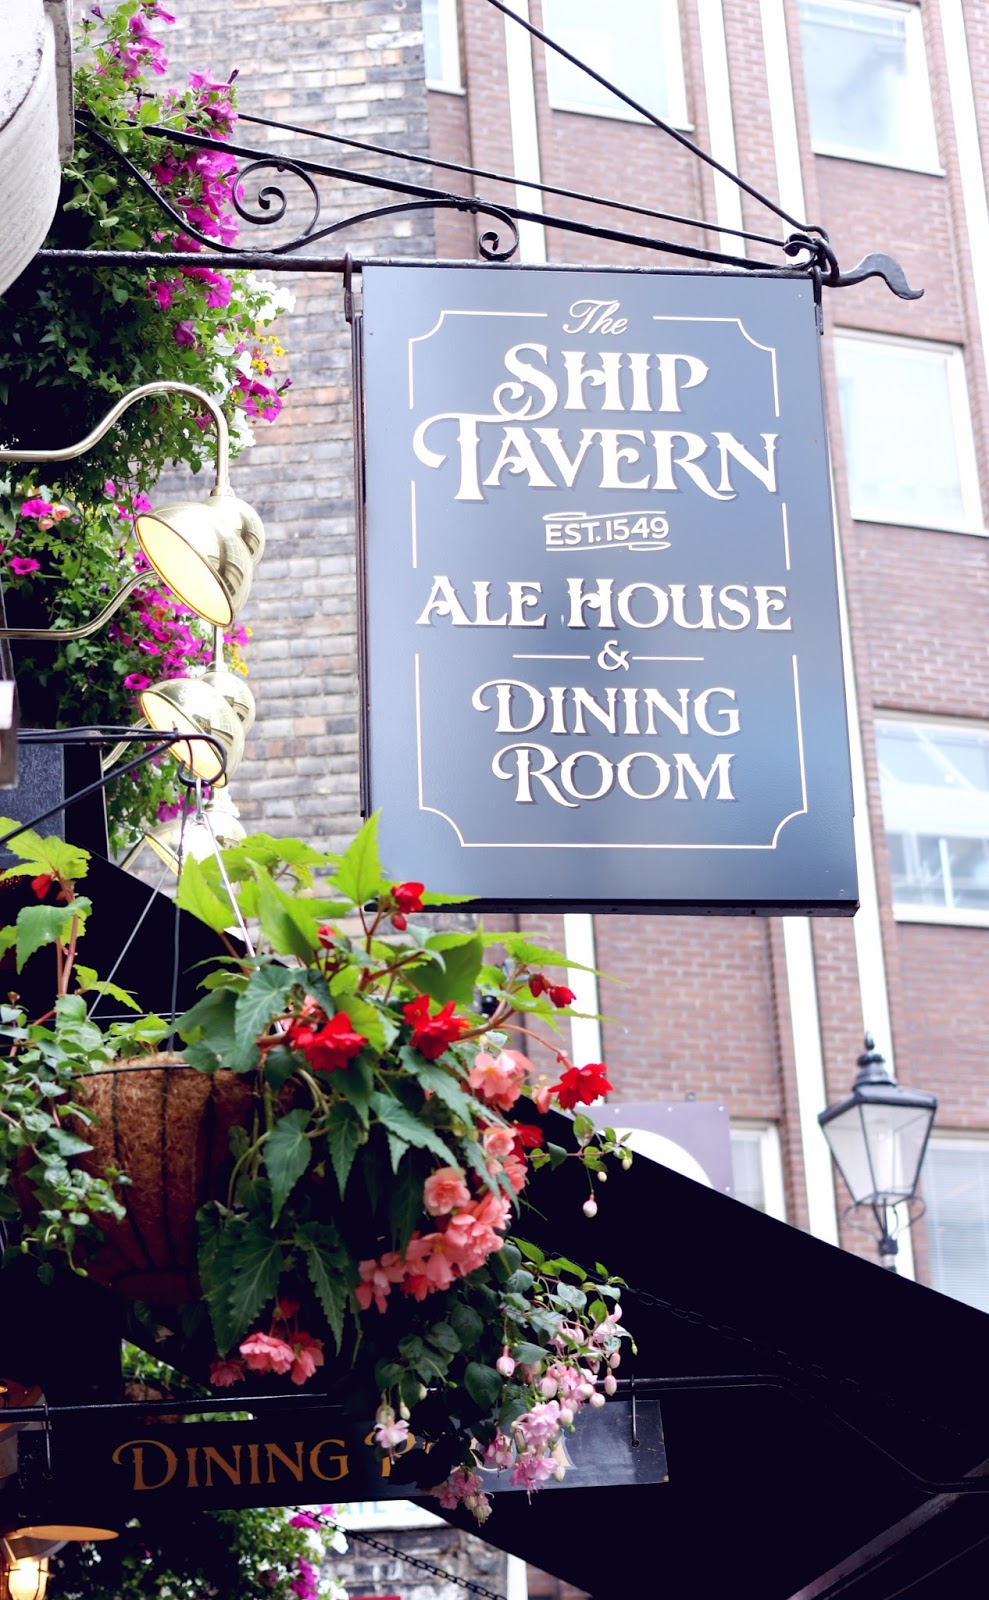 Sunday Lunch at The Ship Tavern, Holborn